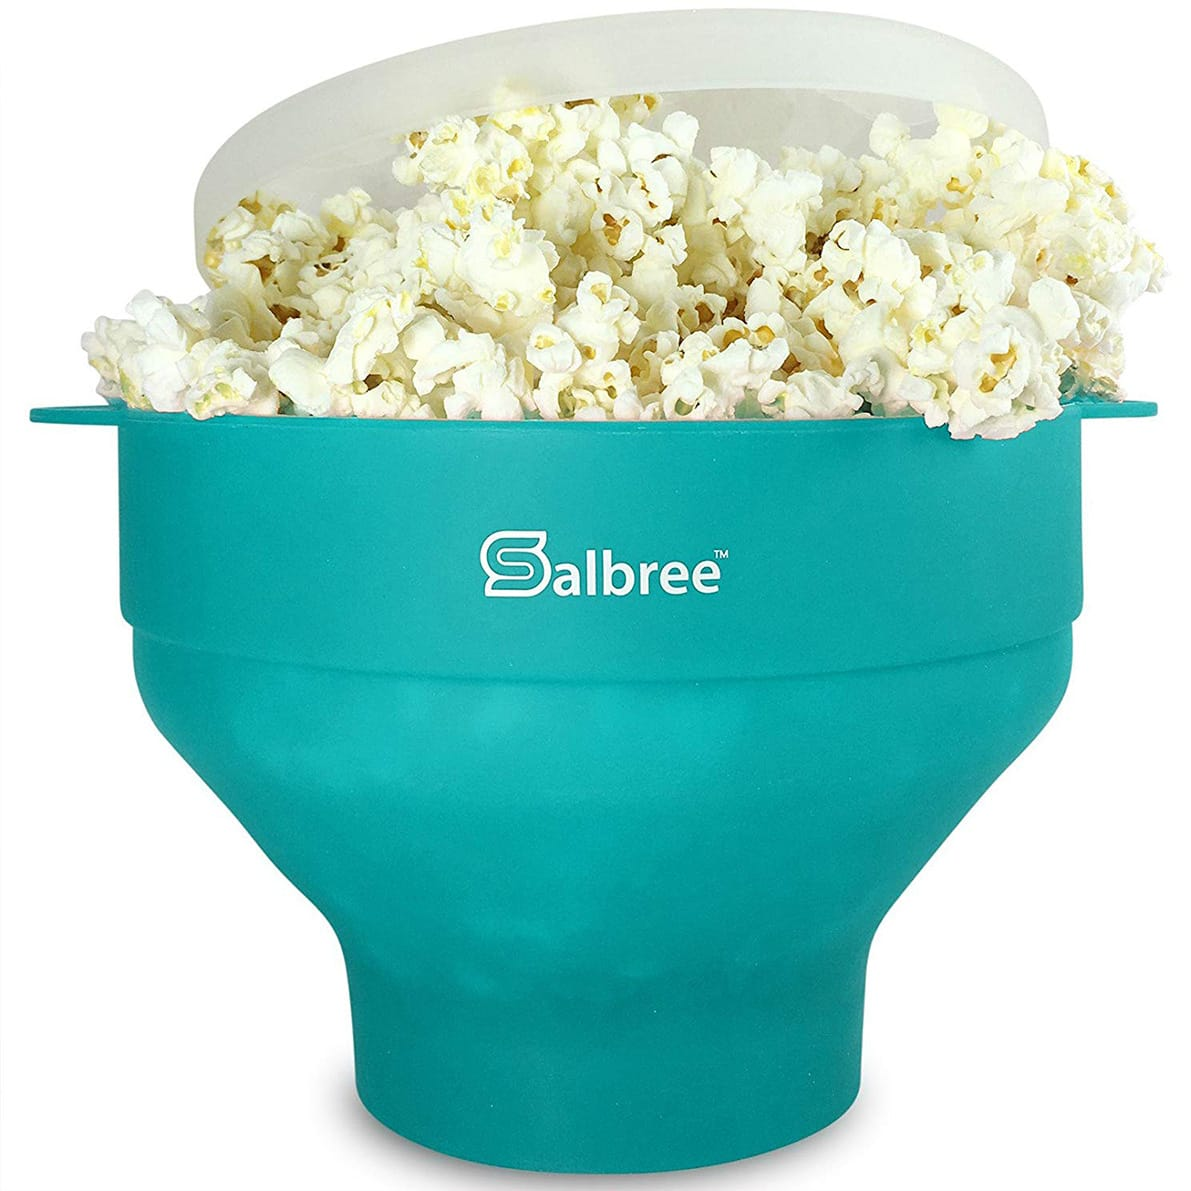 Salbree Popcorn Popper Bowl Review